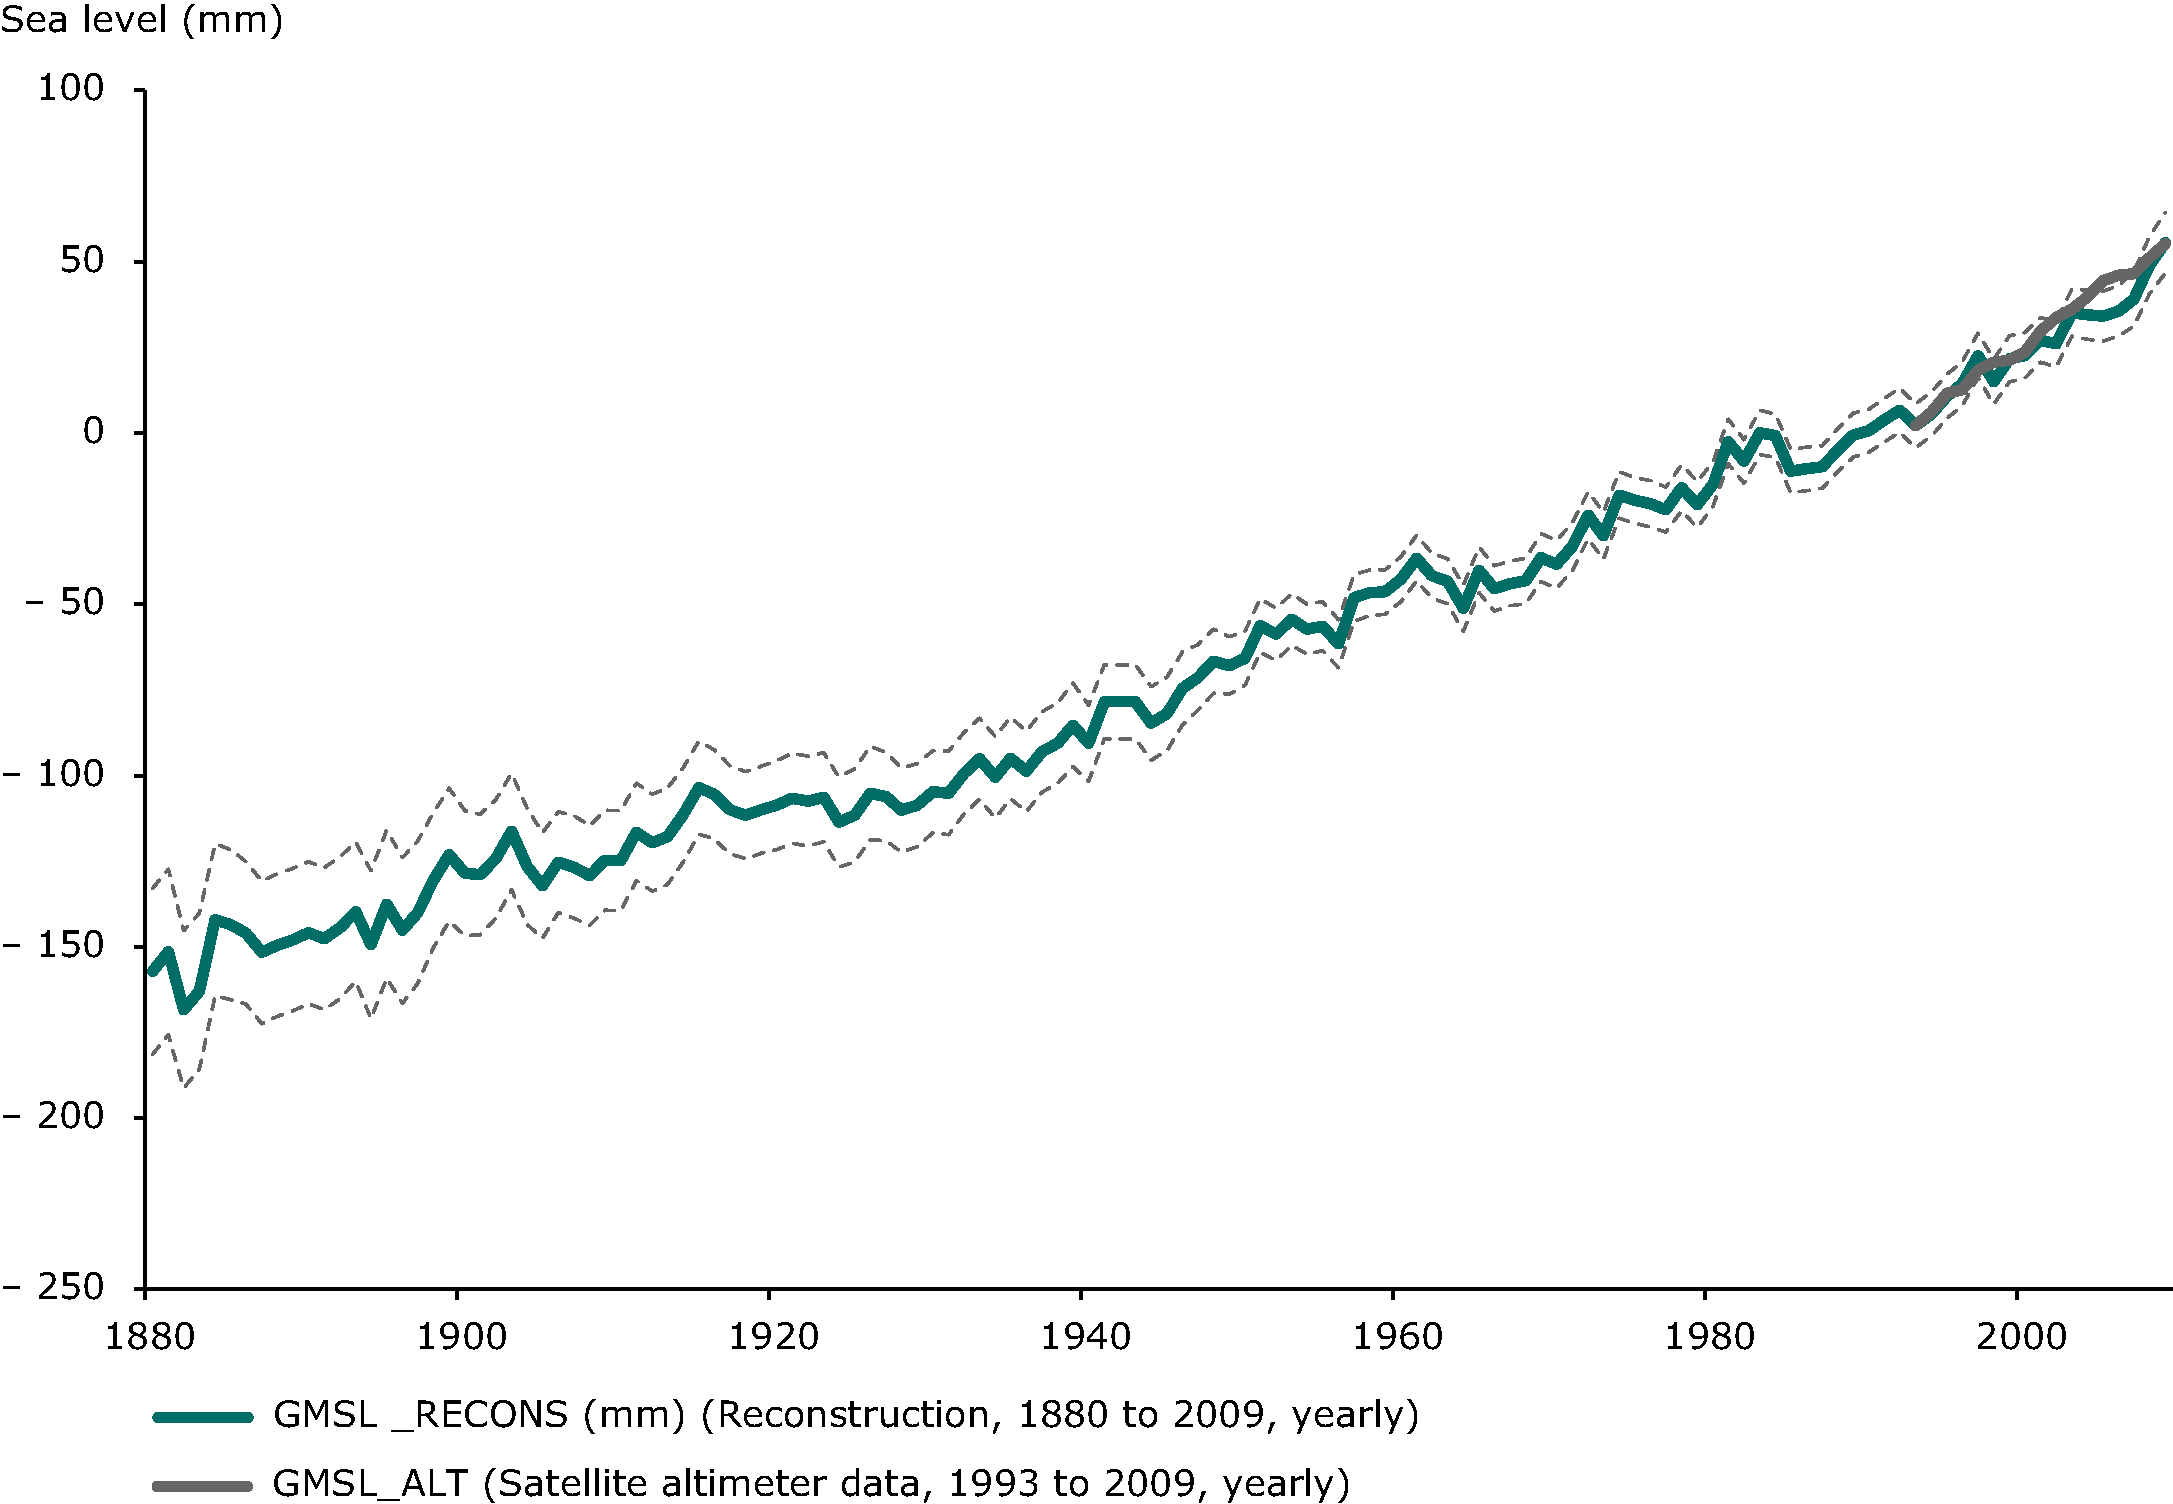 Observed change in global mean sea level